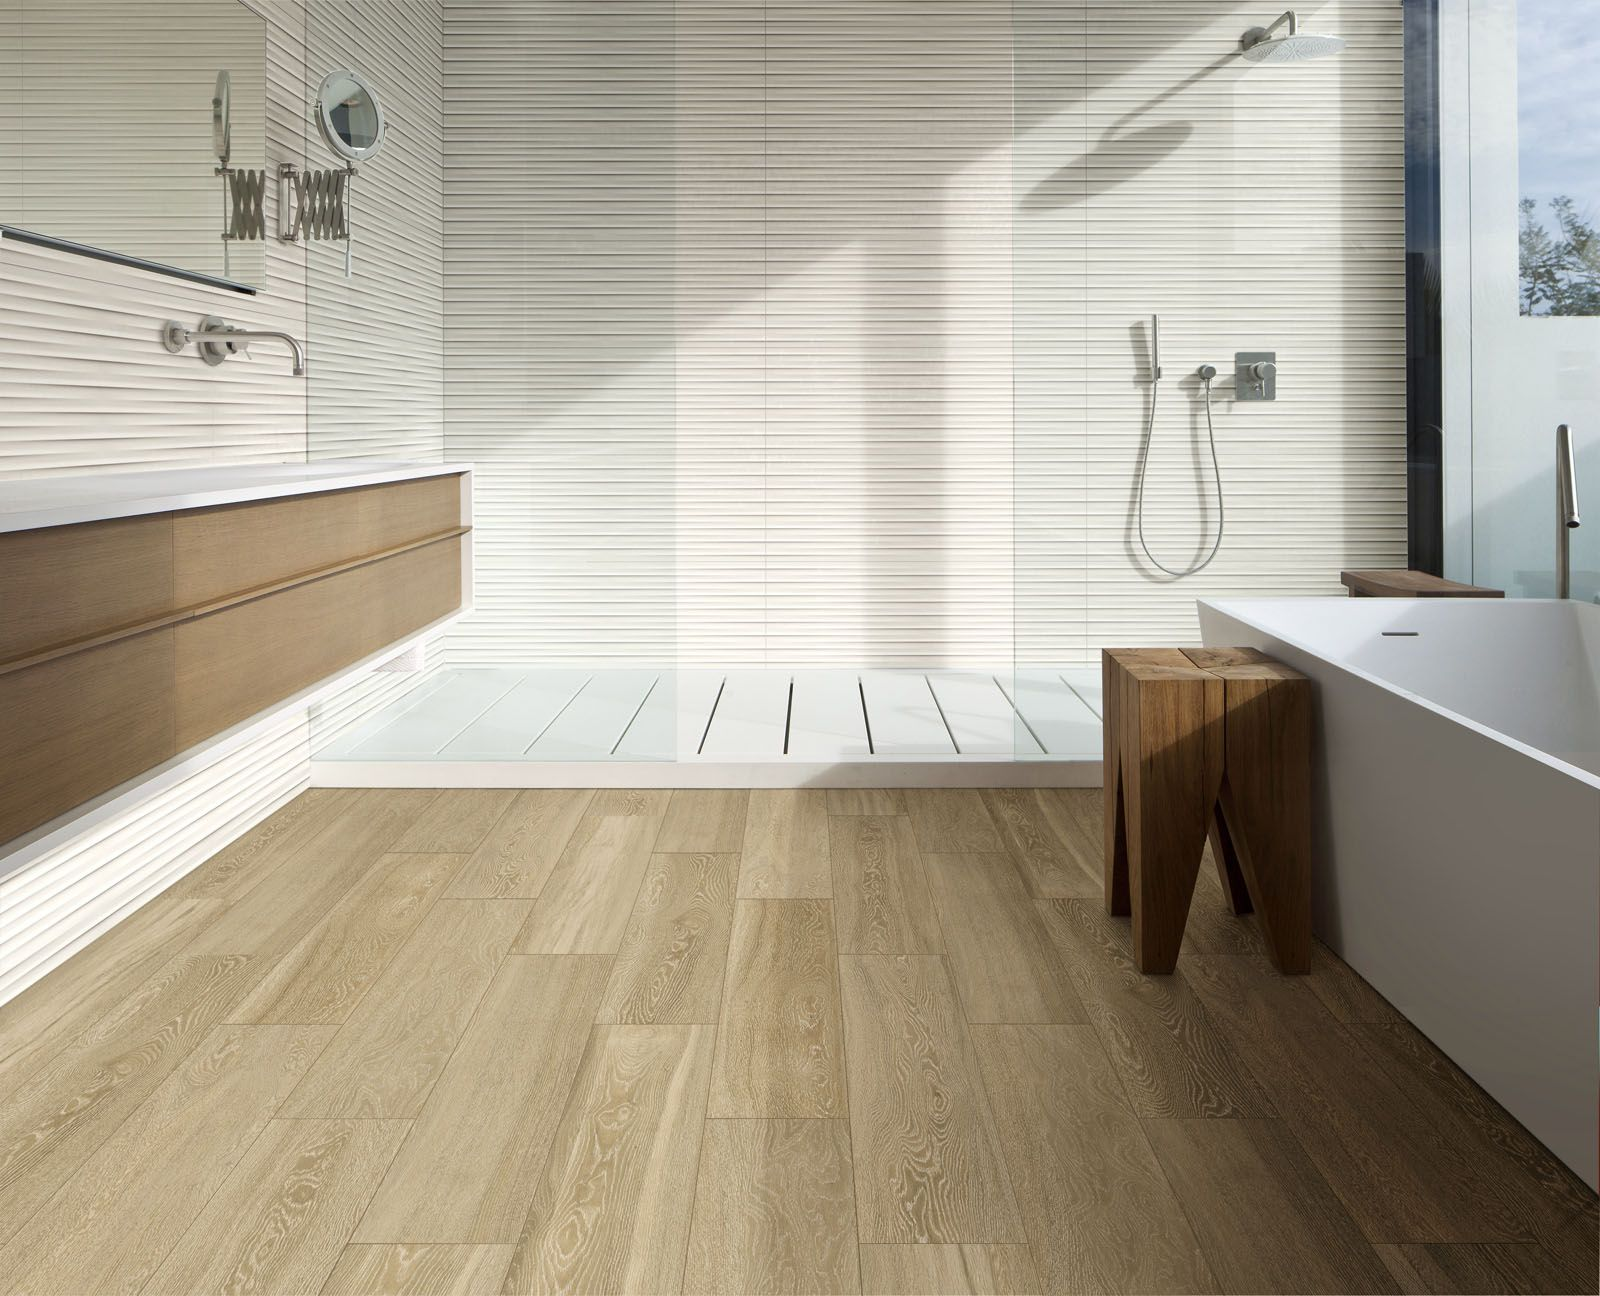 Marazzi #Treverkview #woodlook #woodtiles #ceramics #bathroom ...